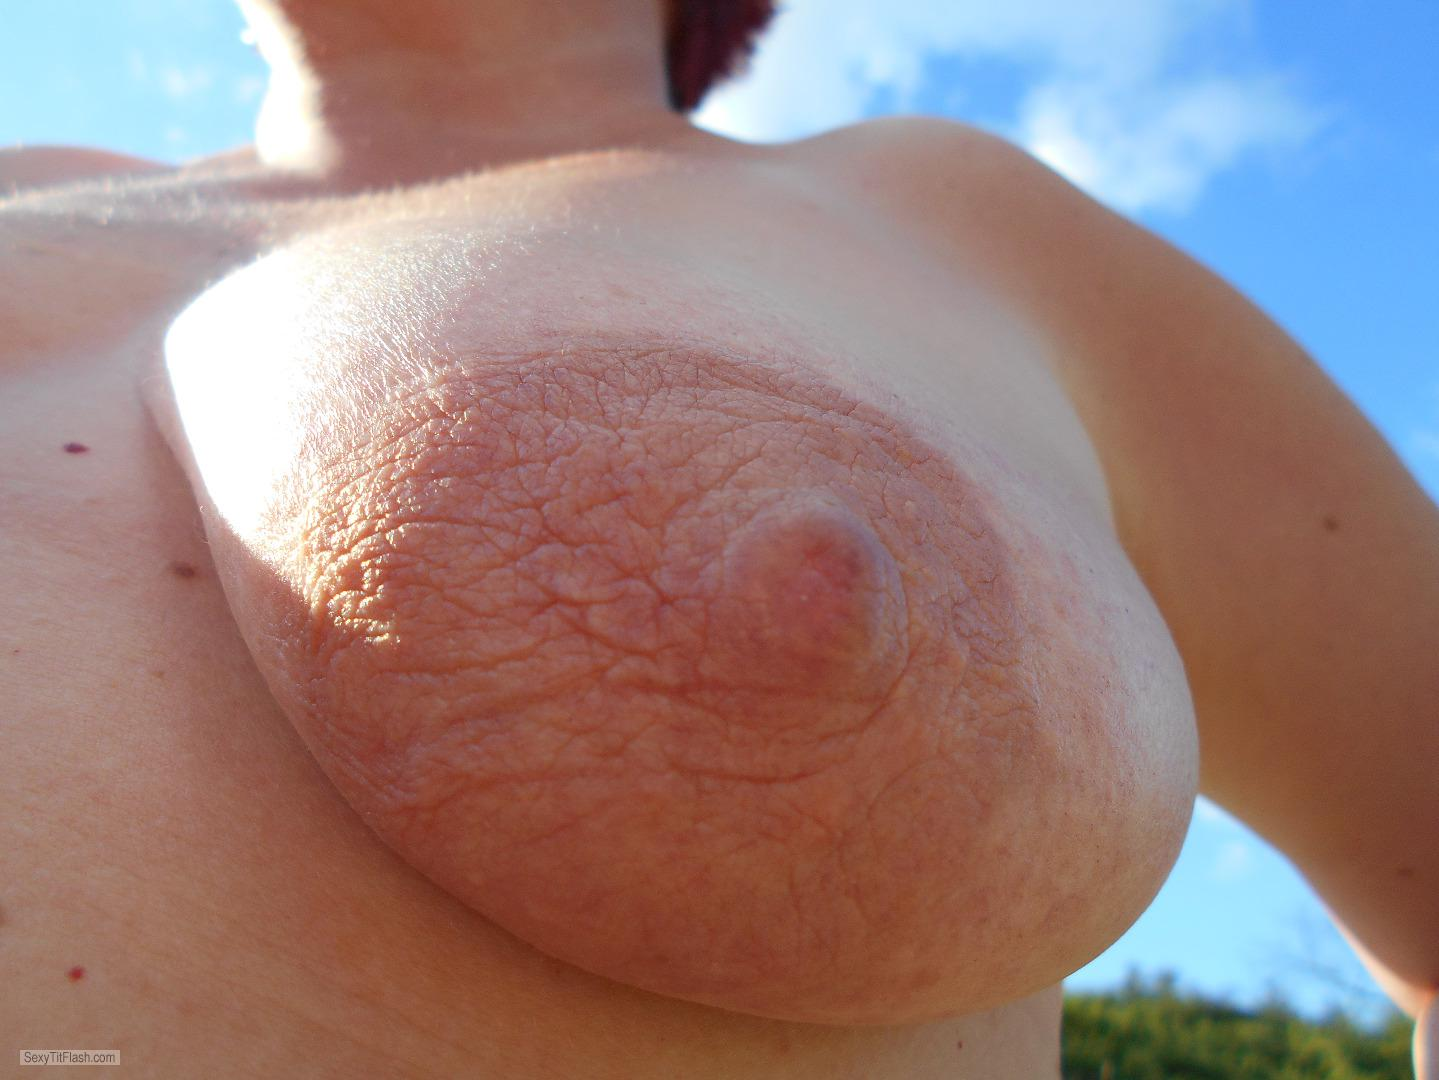 Tit Flash: My Medium Tits - Topless Susi from Germany